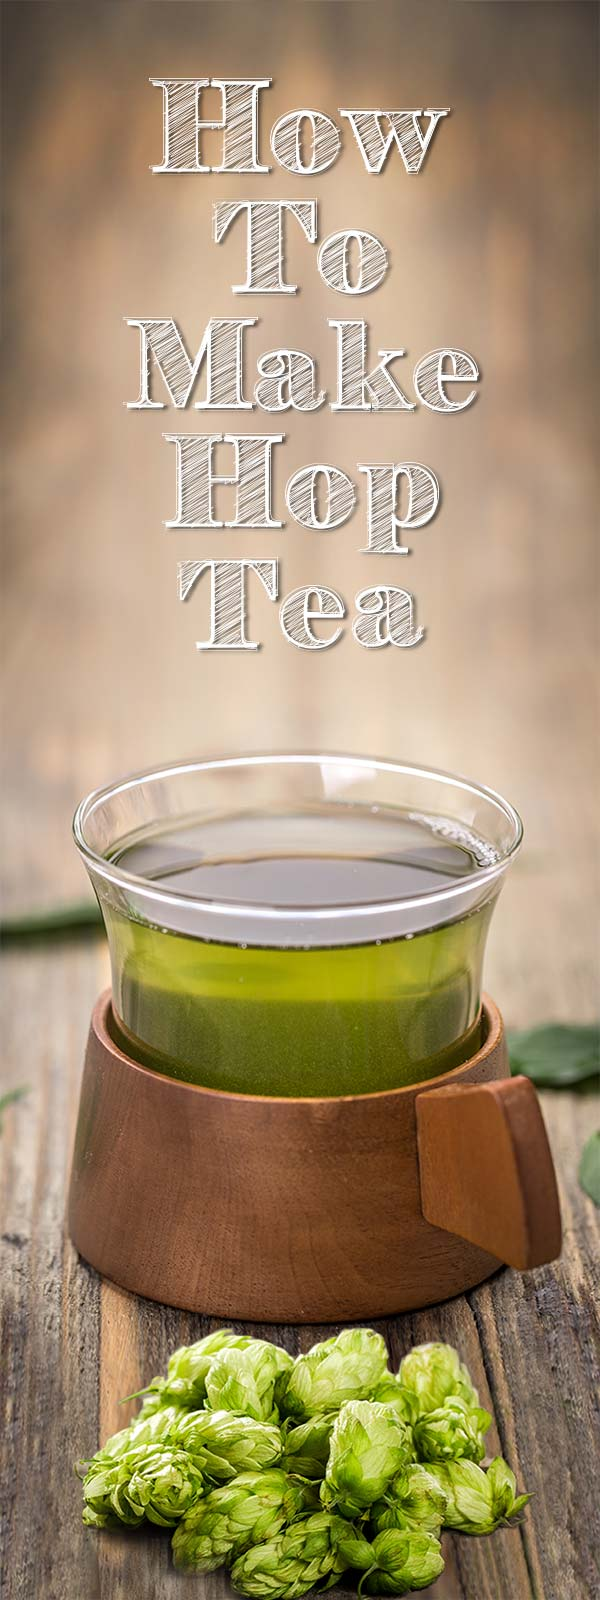 How to Make Hop Tea